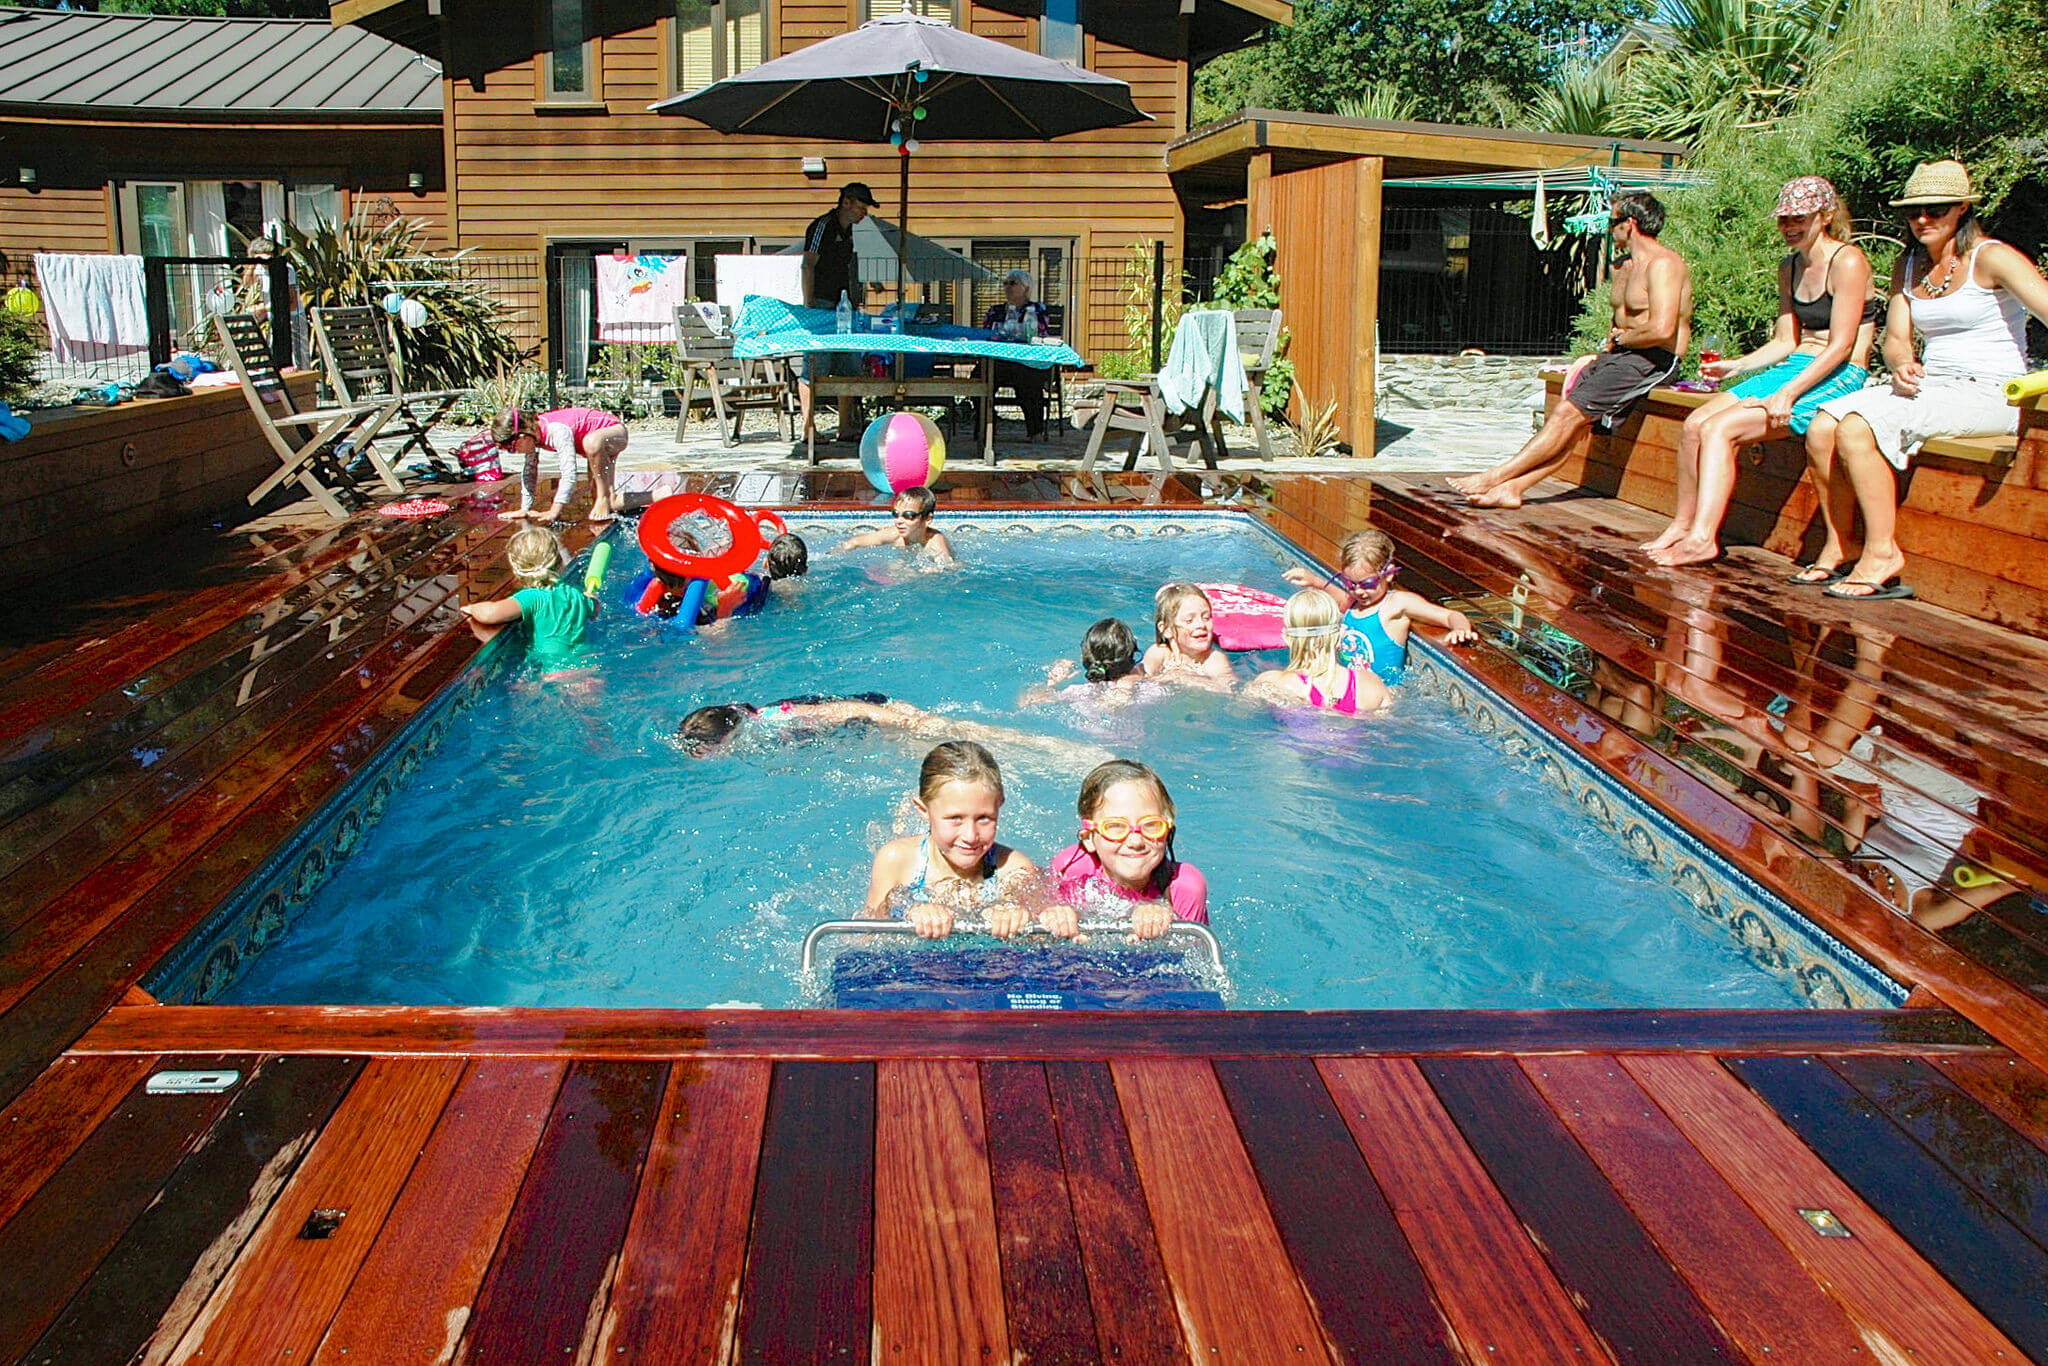 a fully inground Original Endless Pool used for a children's party